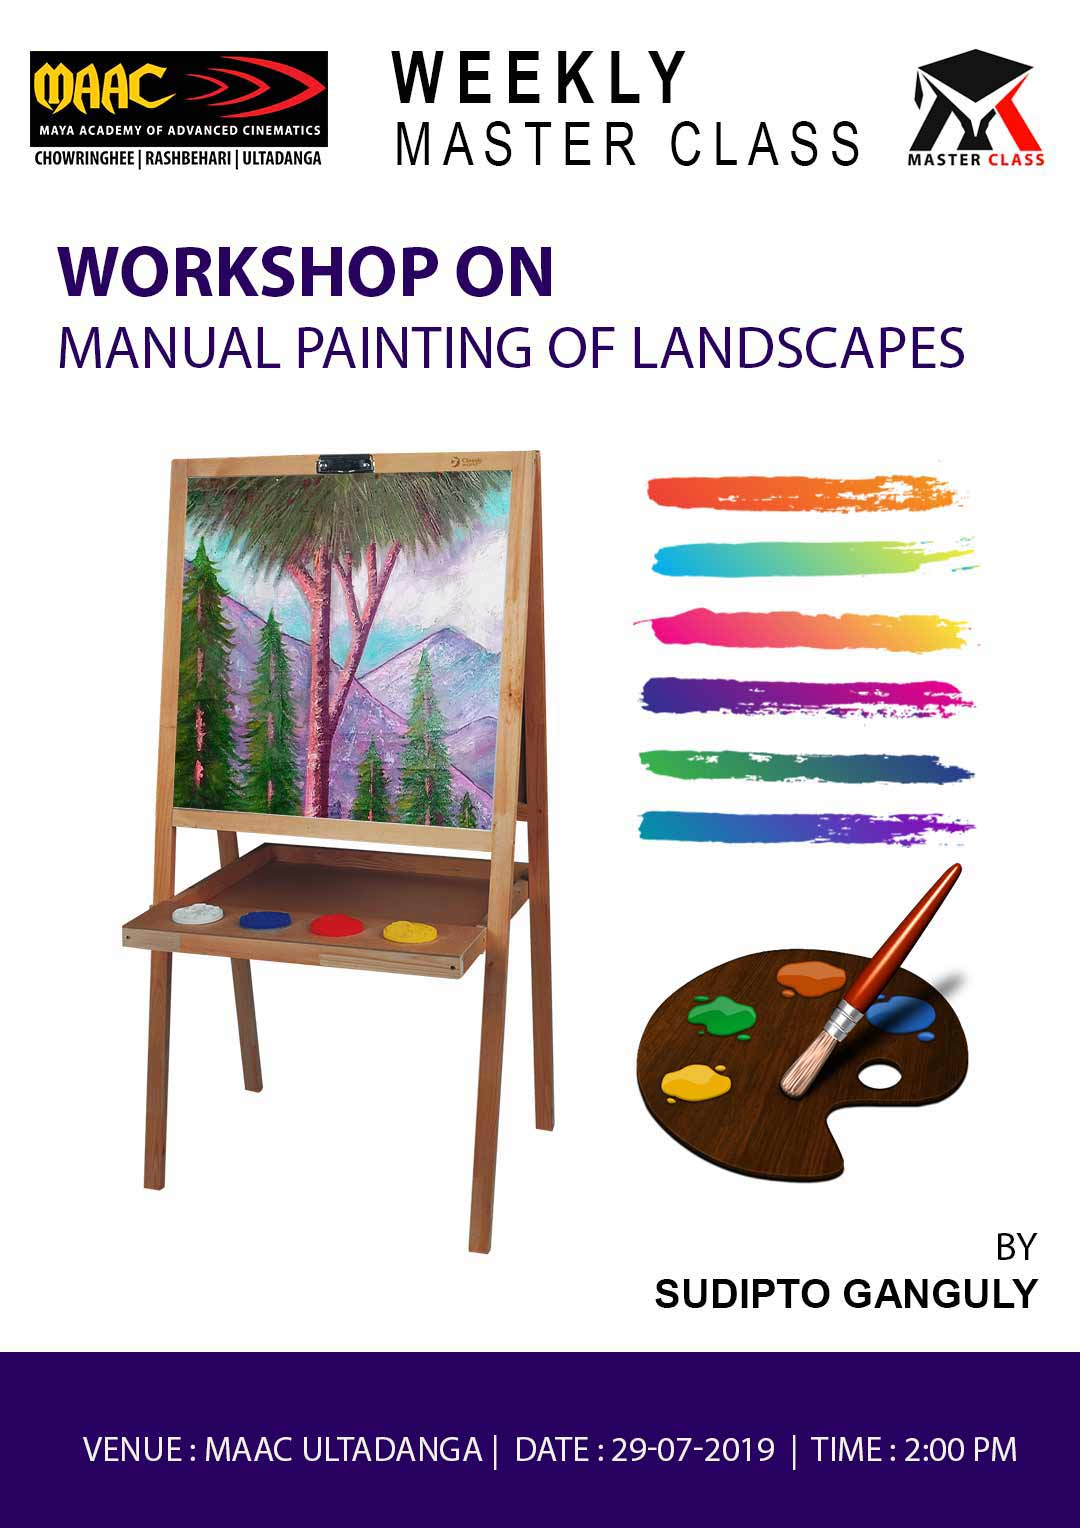 Weekly Master Class on Manual Painting of Landscapes